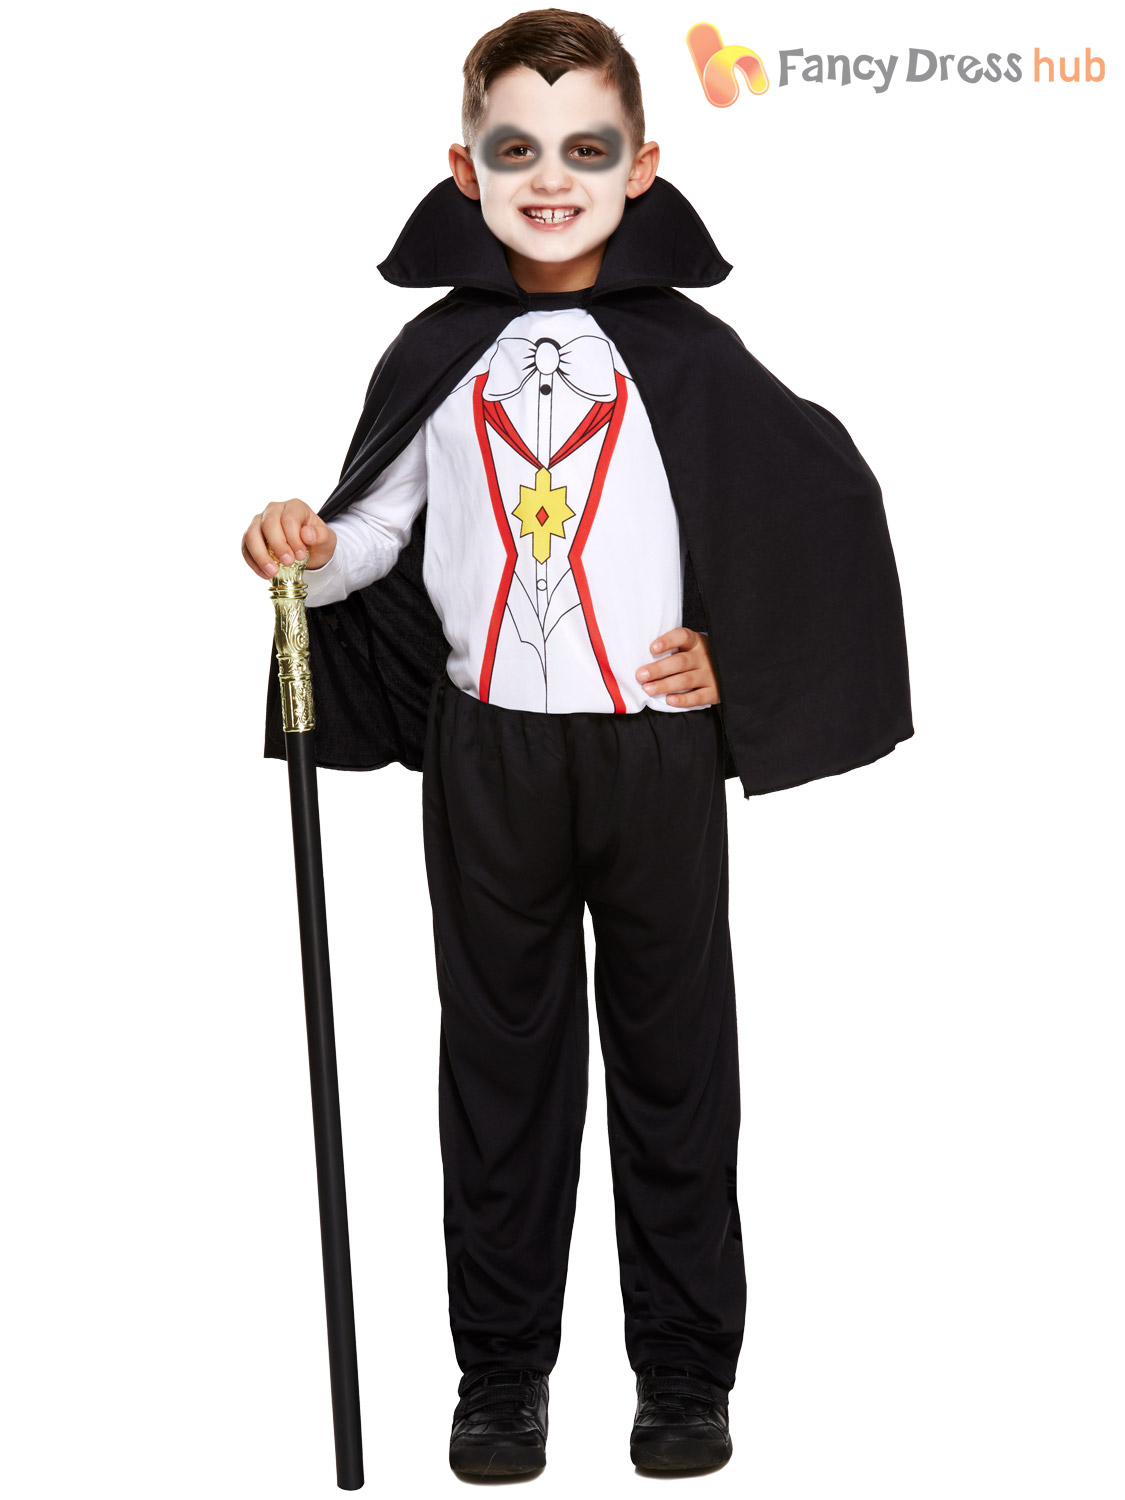 Vampire Costumes for Boys If your child is looking to create the ultimate Halloween monster this year, a Vampire is the perfect (not to mention very popular) choice. With so many fabulous and detailed Vampire costumes to choose from, your child can decide what level of scary he wants to attain, whether he wants a more traditional look or one that is more reminiscent of one of today's Vampire movie favorites.